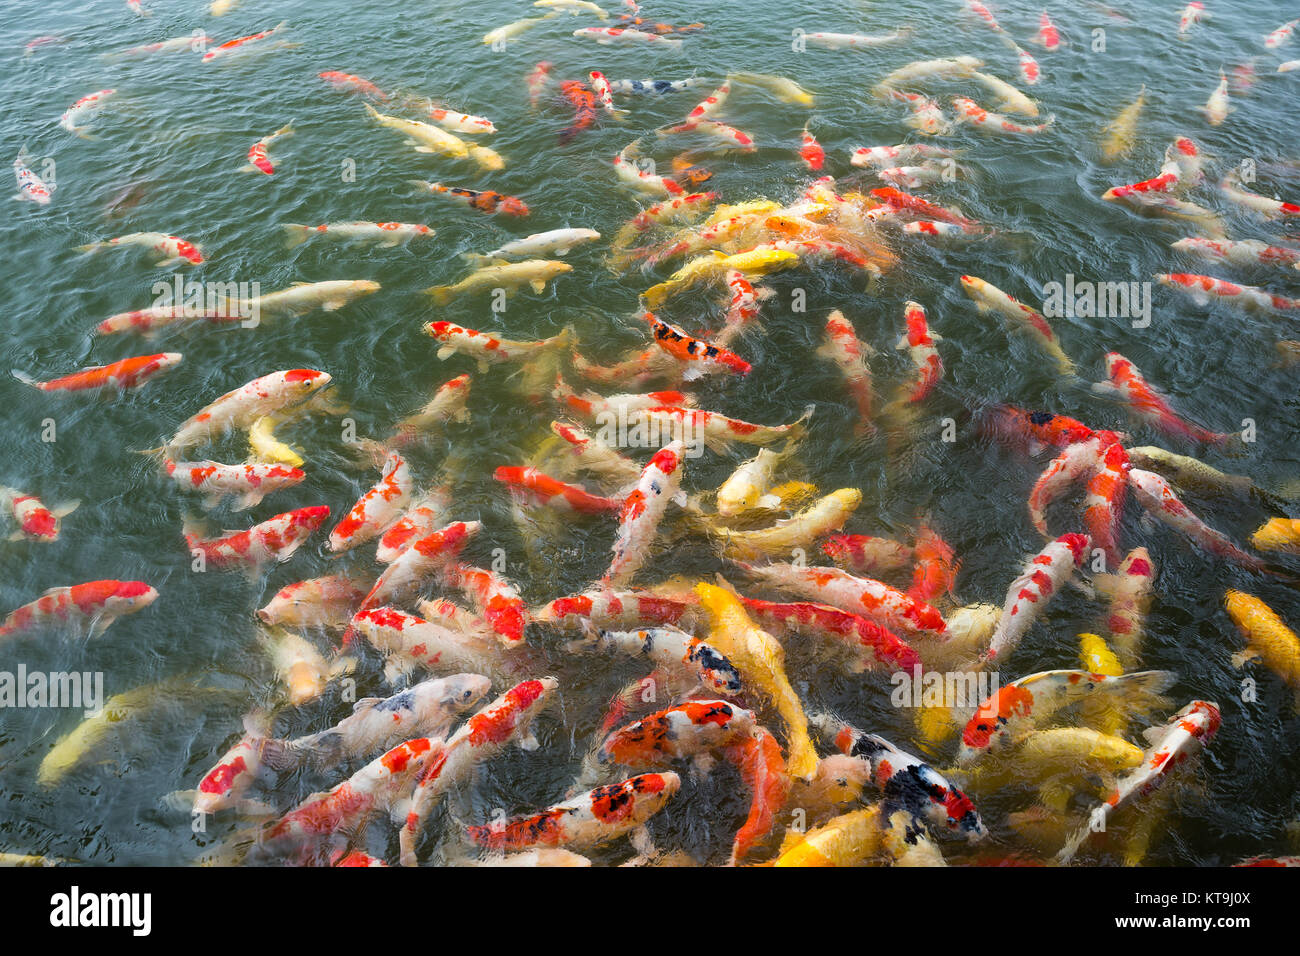 Bighead carp stock photos bighead carp stock images alamy for Colorful pond fish